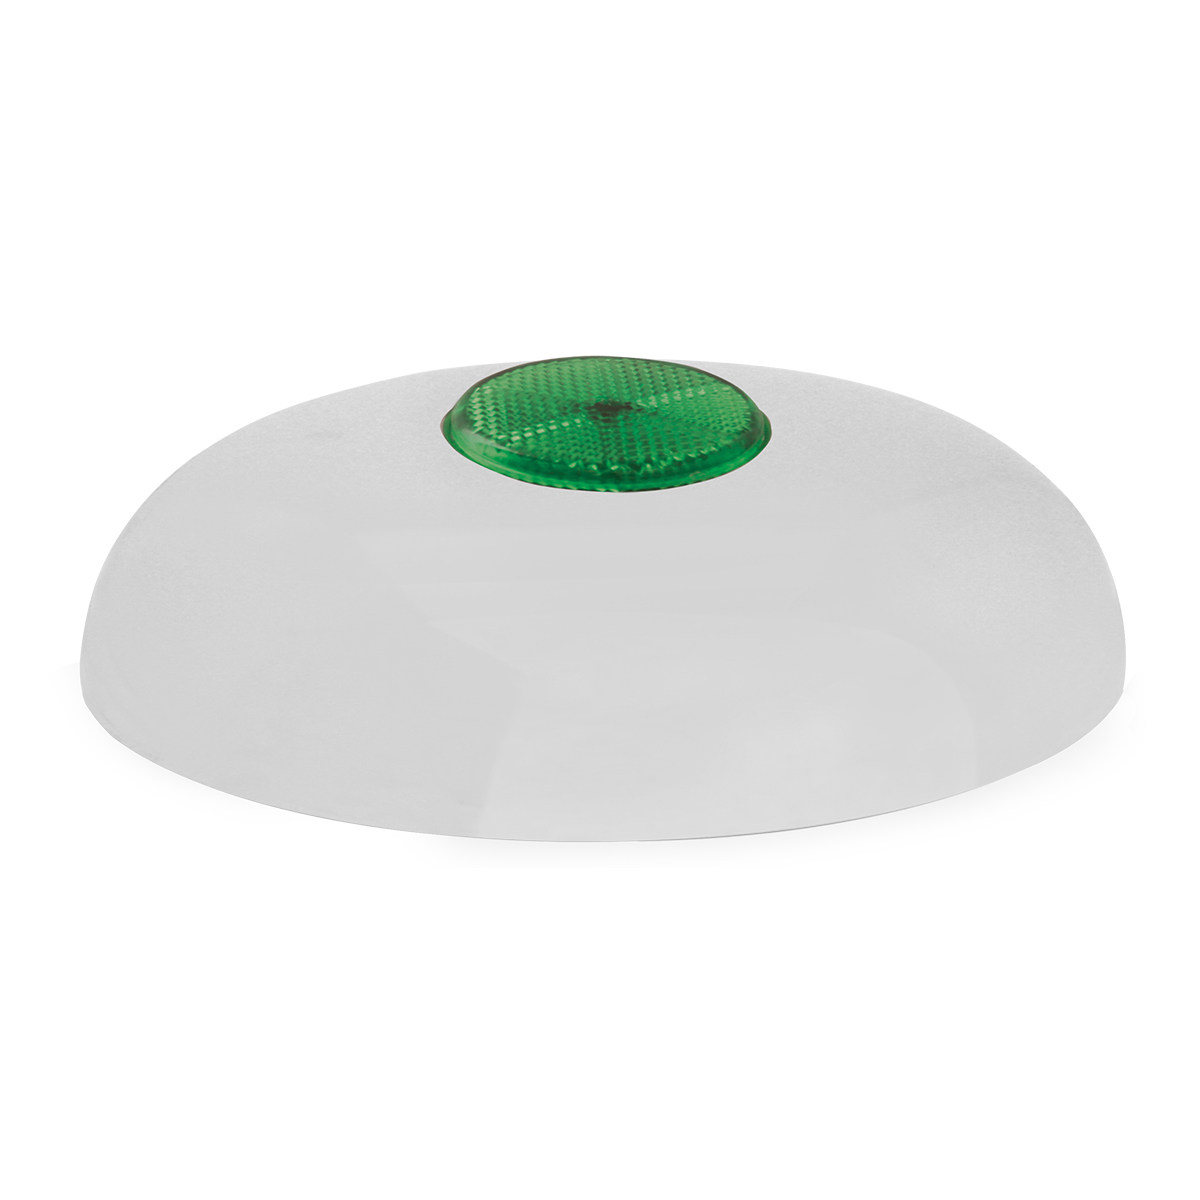 Chrome Plated Steel Horn Cover with Green Reflector on Center